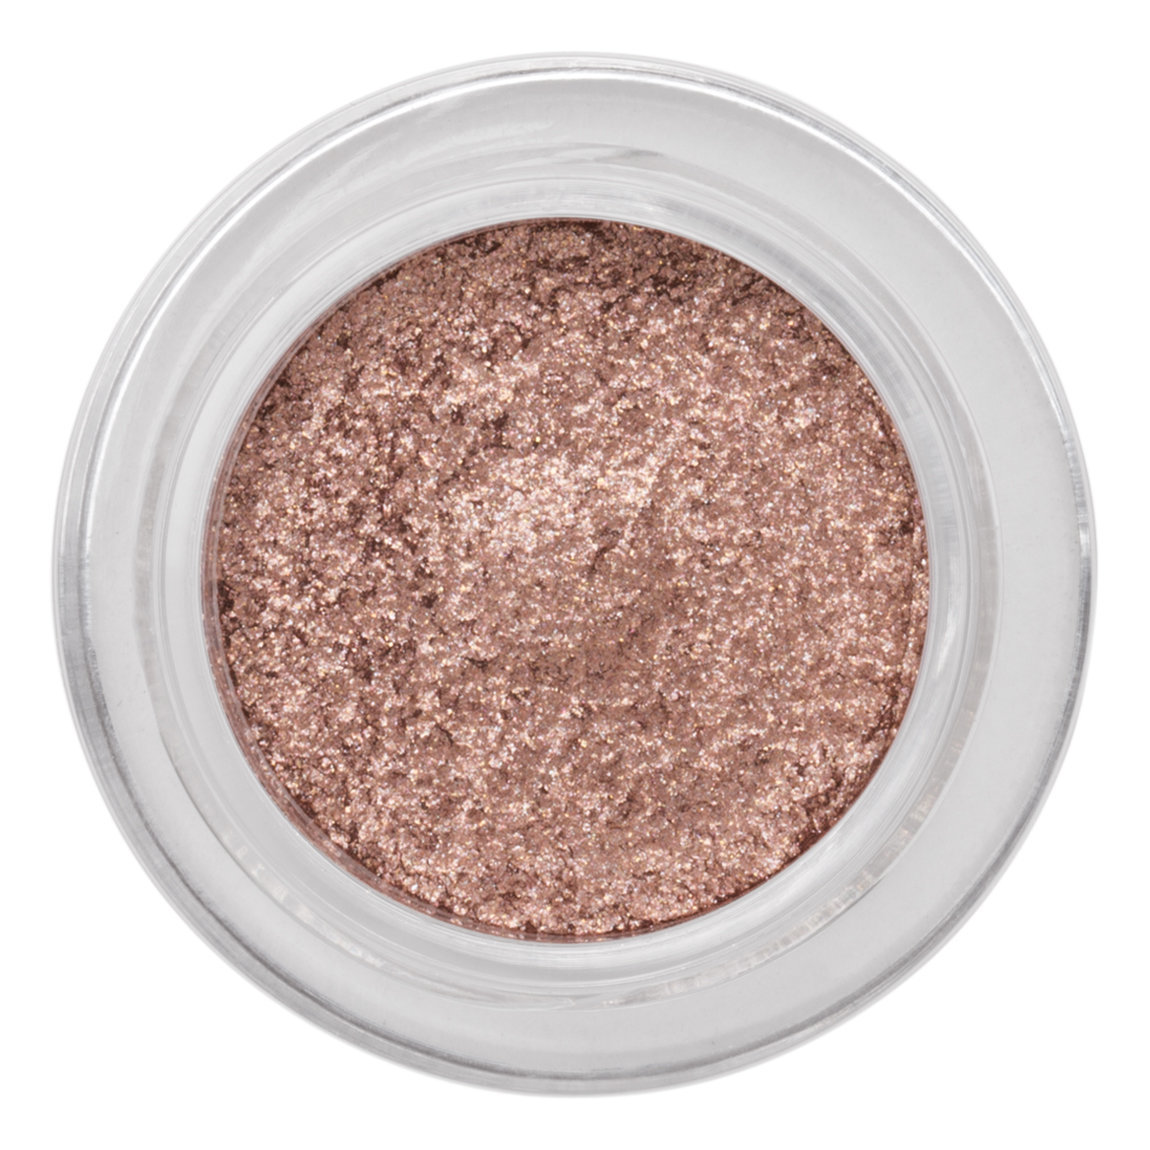 Hourglass Scattered Light Glitter Eyeshadow Smoke